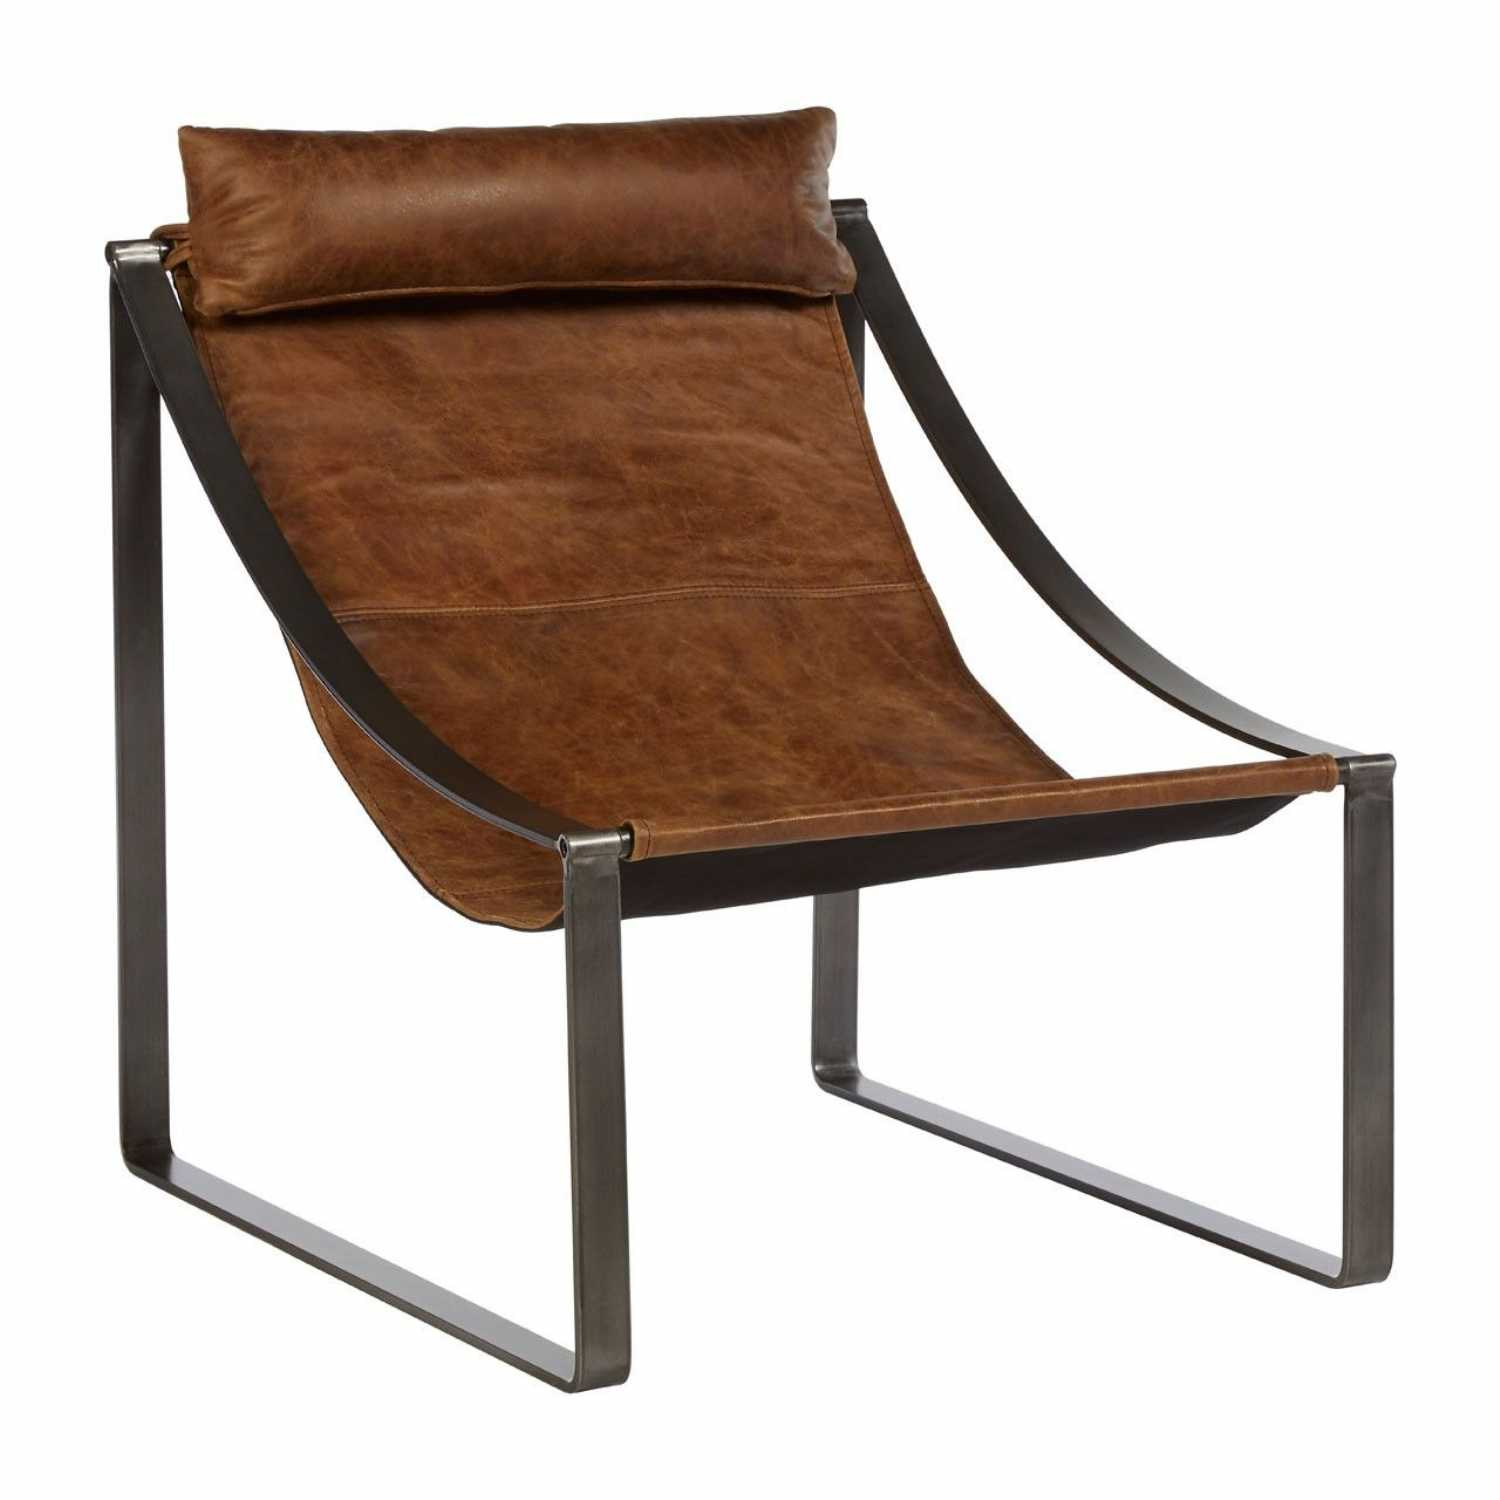 Awe Inspiring Industrial Hoxton Light Brown Leather Armchair Iron Flat Angular Legs Unemploymentrelief Wooden Chair Designs For Living Room Unemploymentrelieforg